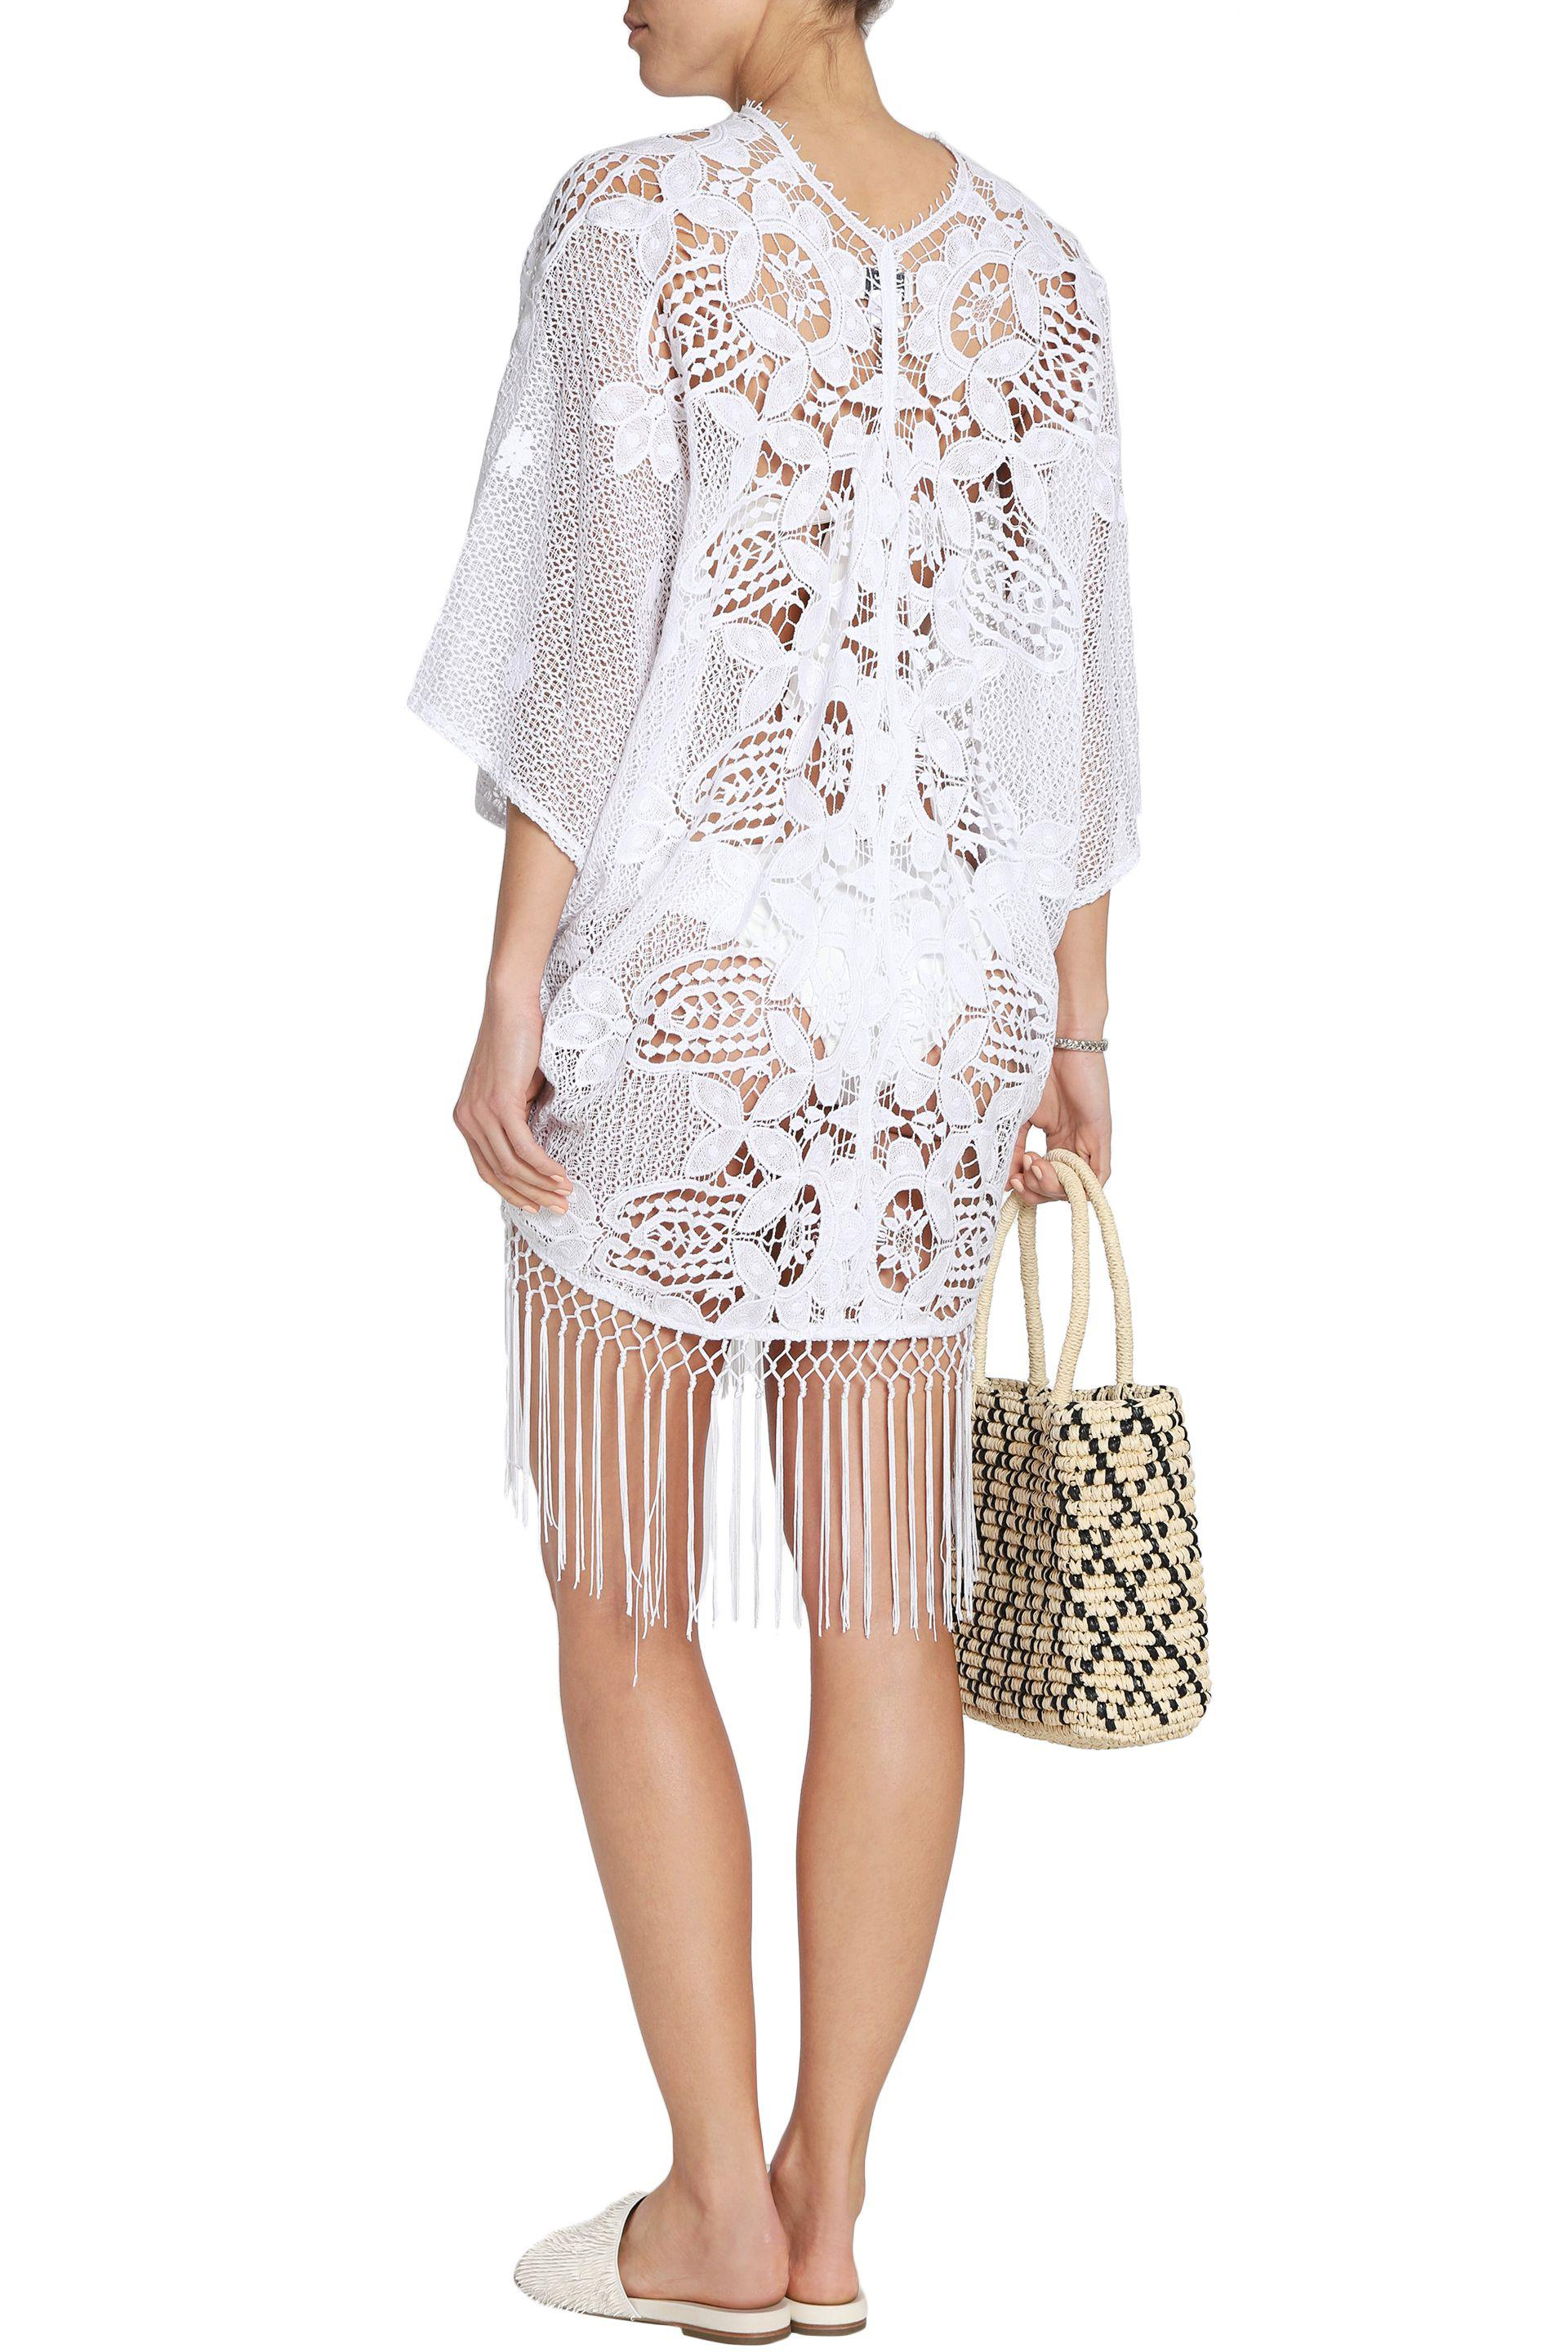 Miguelina Lace Appliquéd Crocheted Cotton Kaftan in White